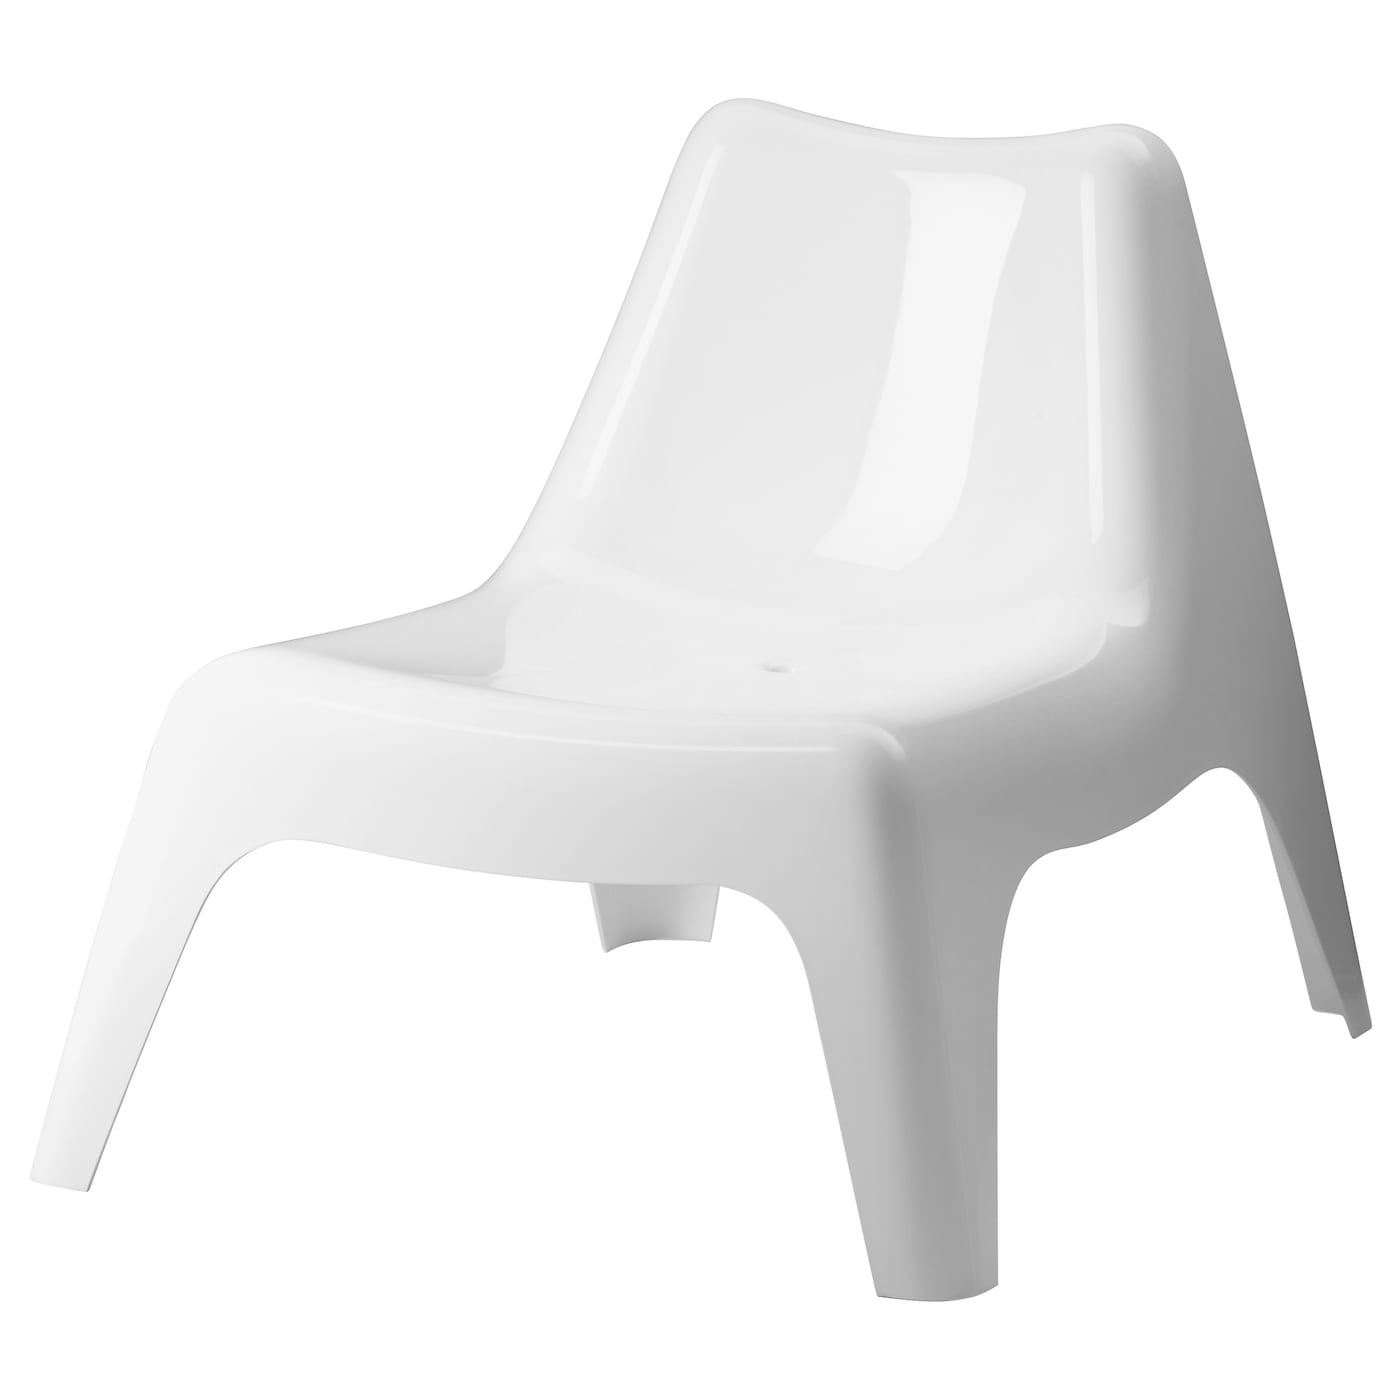 Ikea ps v g easy chair outdoor white ikea - Chaise ikea plastique ...